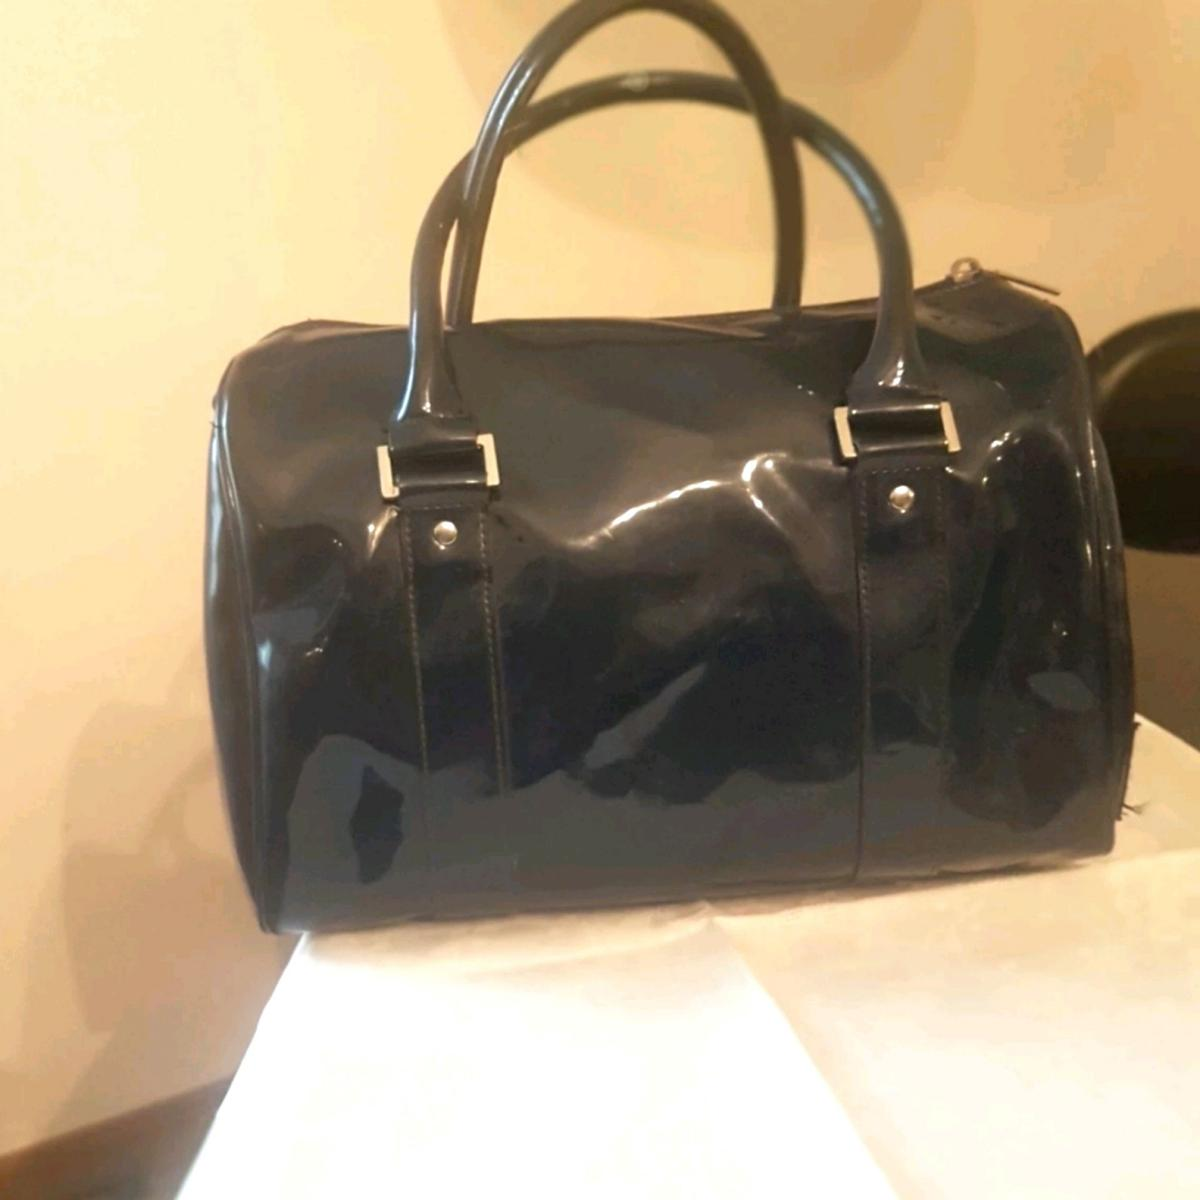 0a4325d3f9 Borsa bauletto Armani vernice in 20133 Milano for €55.00 for sale ...